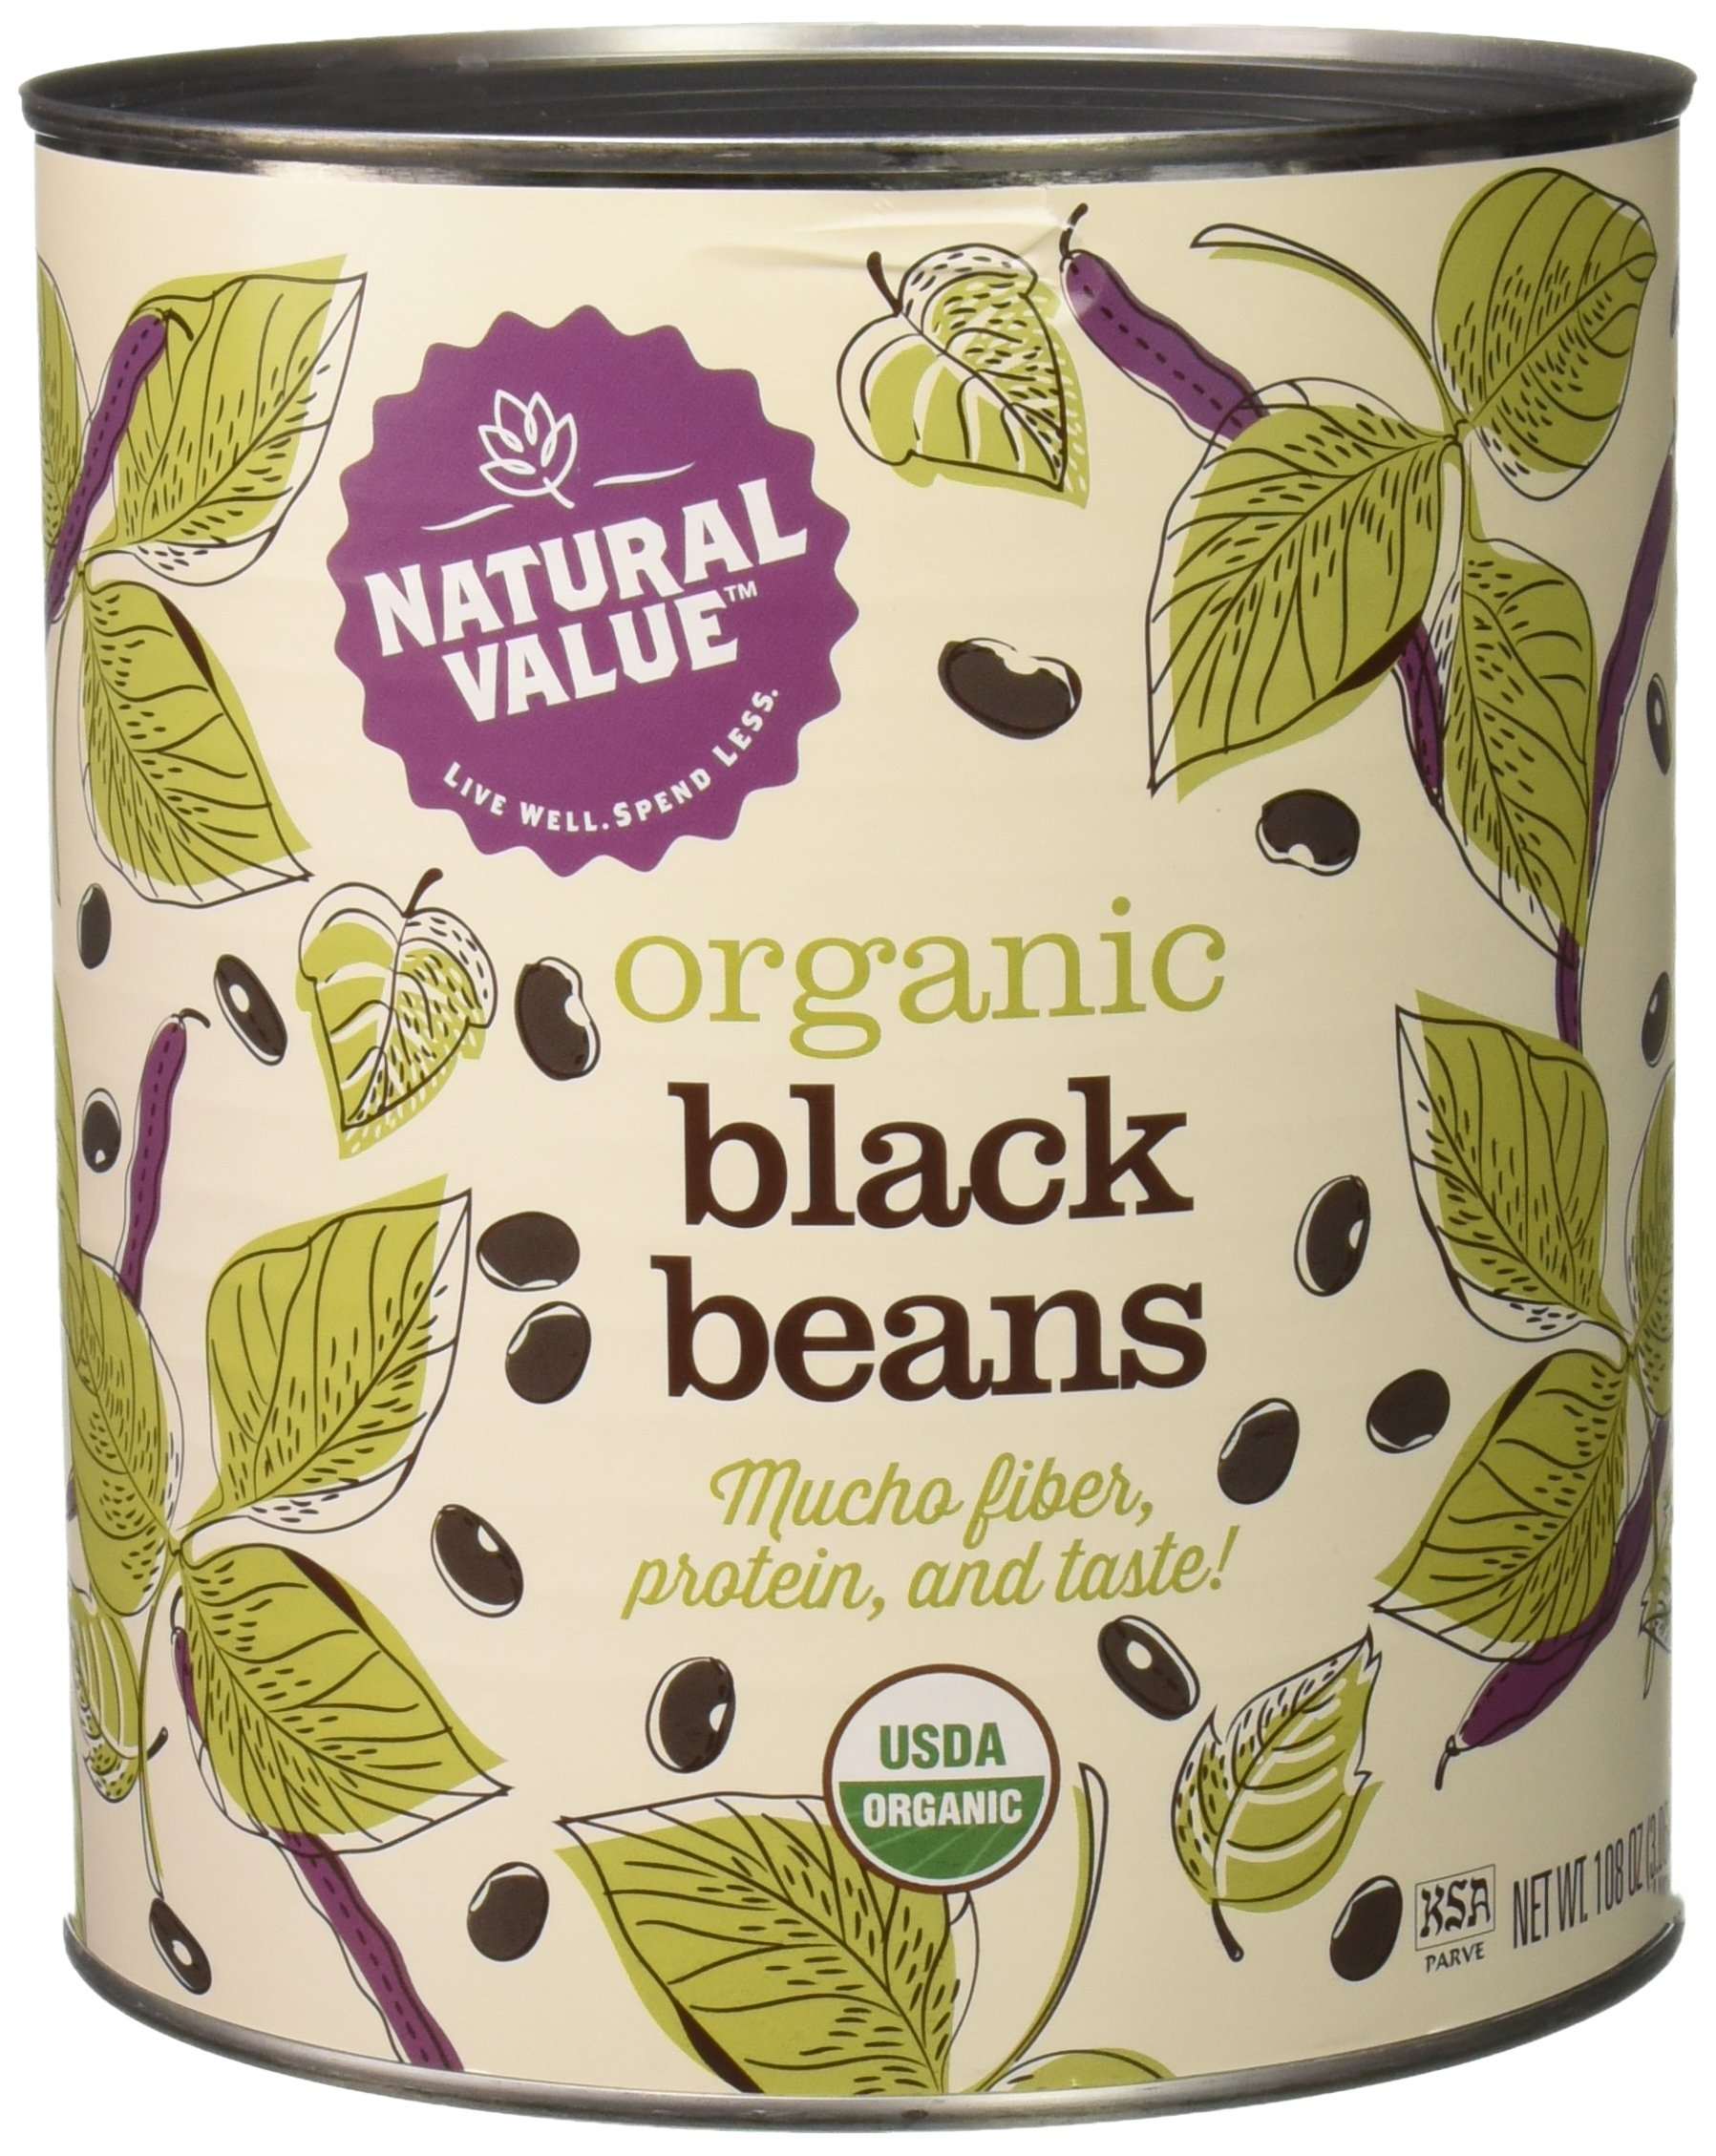 Natural Value 100% Organic Black Beans, 110 Ounce by Natural Value (Image #1)